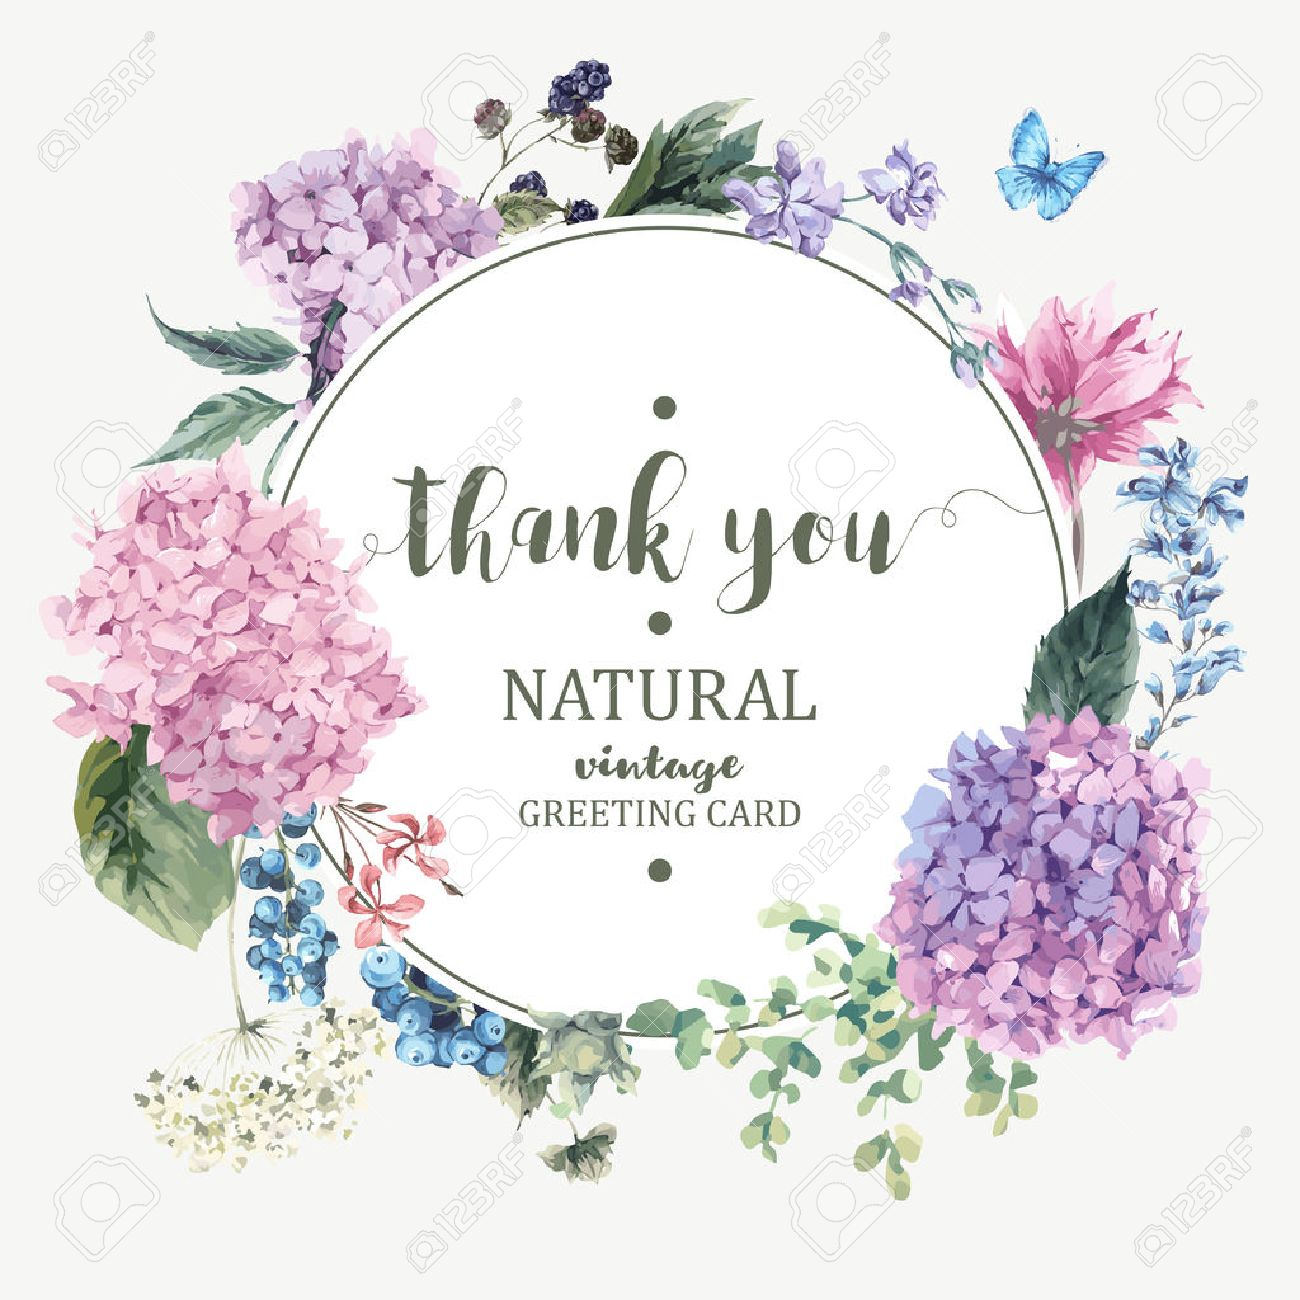 Summer Vintage Floral Greeting Card with Blooming Hydrangea and garden flowers, Thank you botanical natural hydrangea Illustration on white in watercolor style. - 59810392